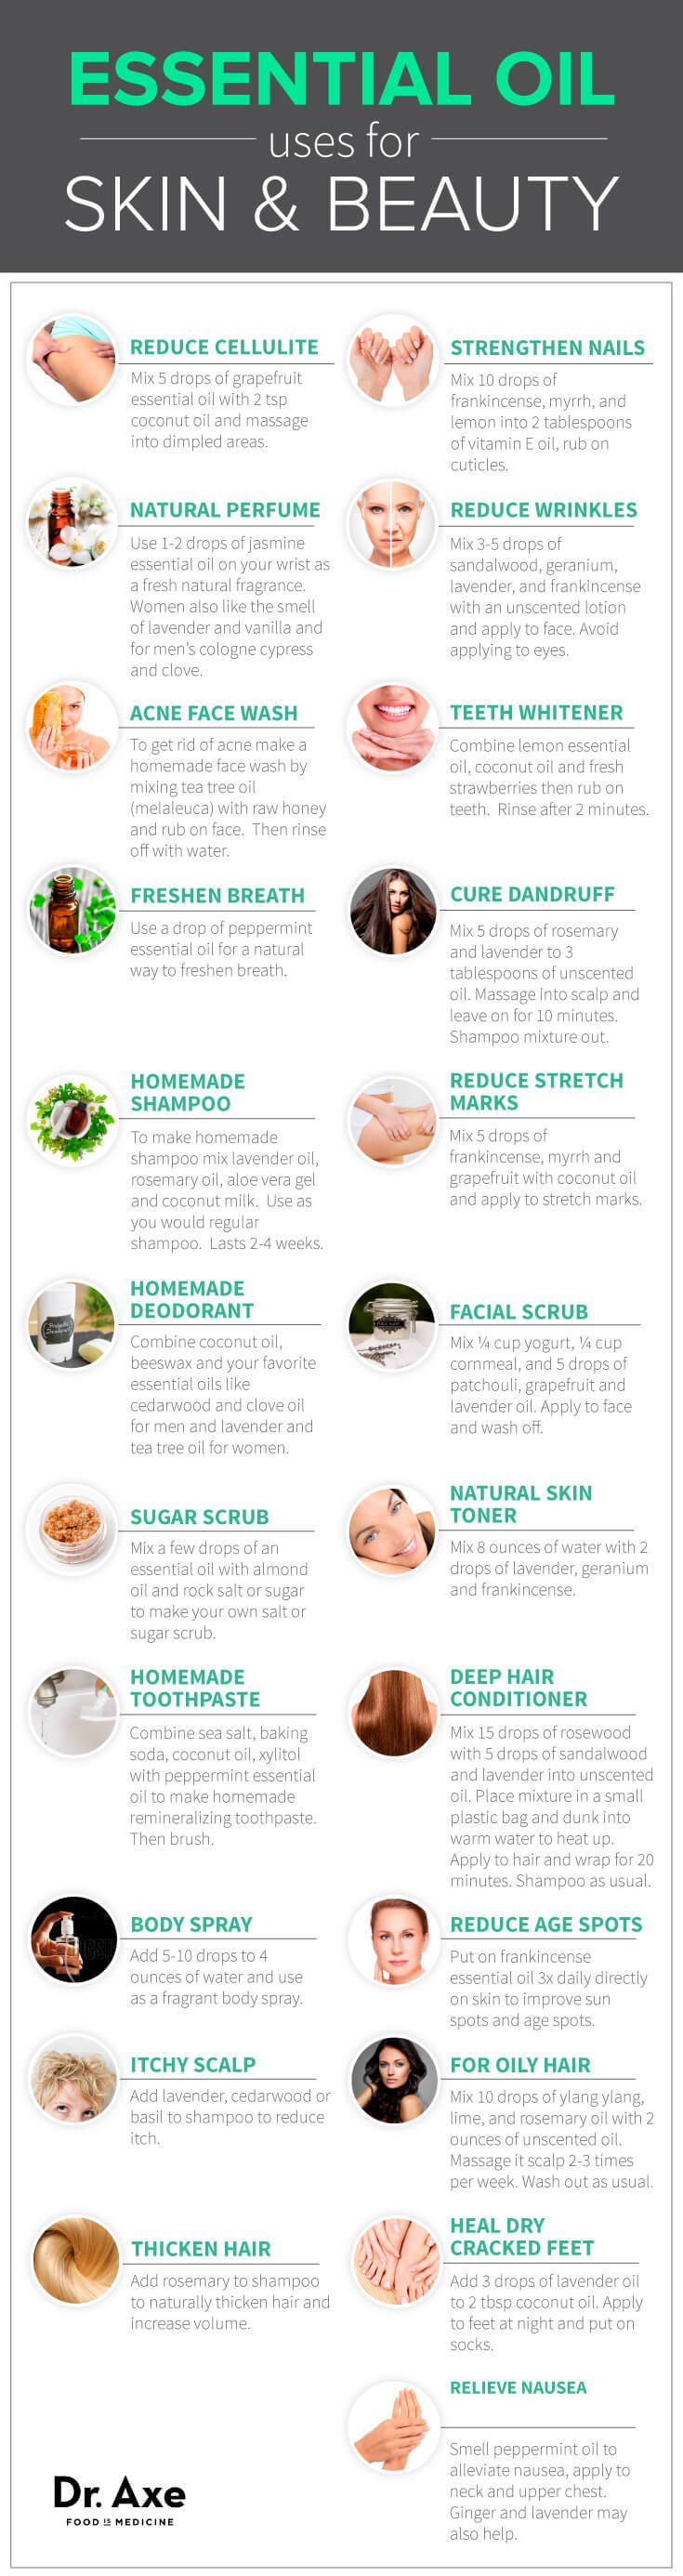 Essential Oil Uses for Skin and Beauty